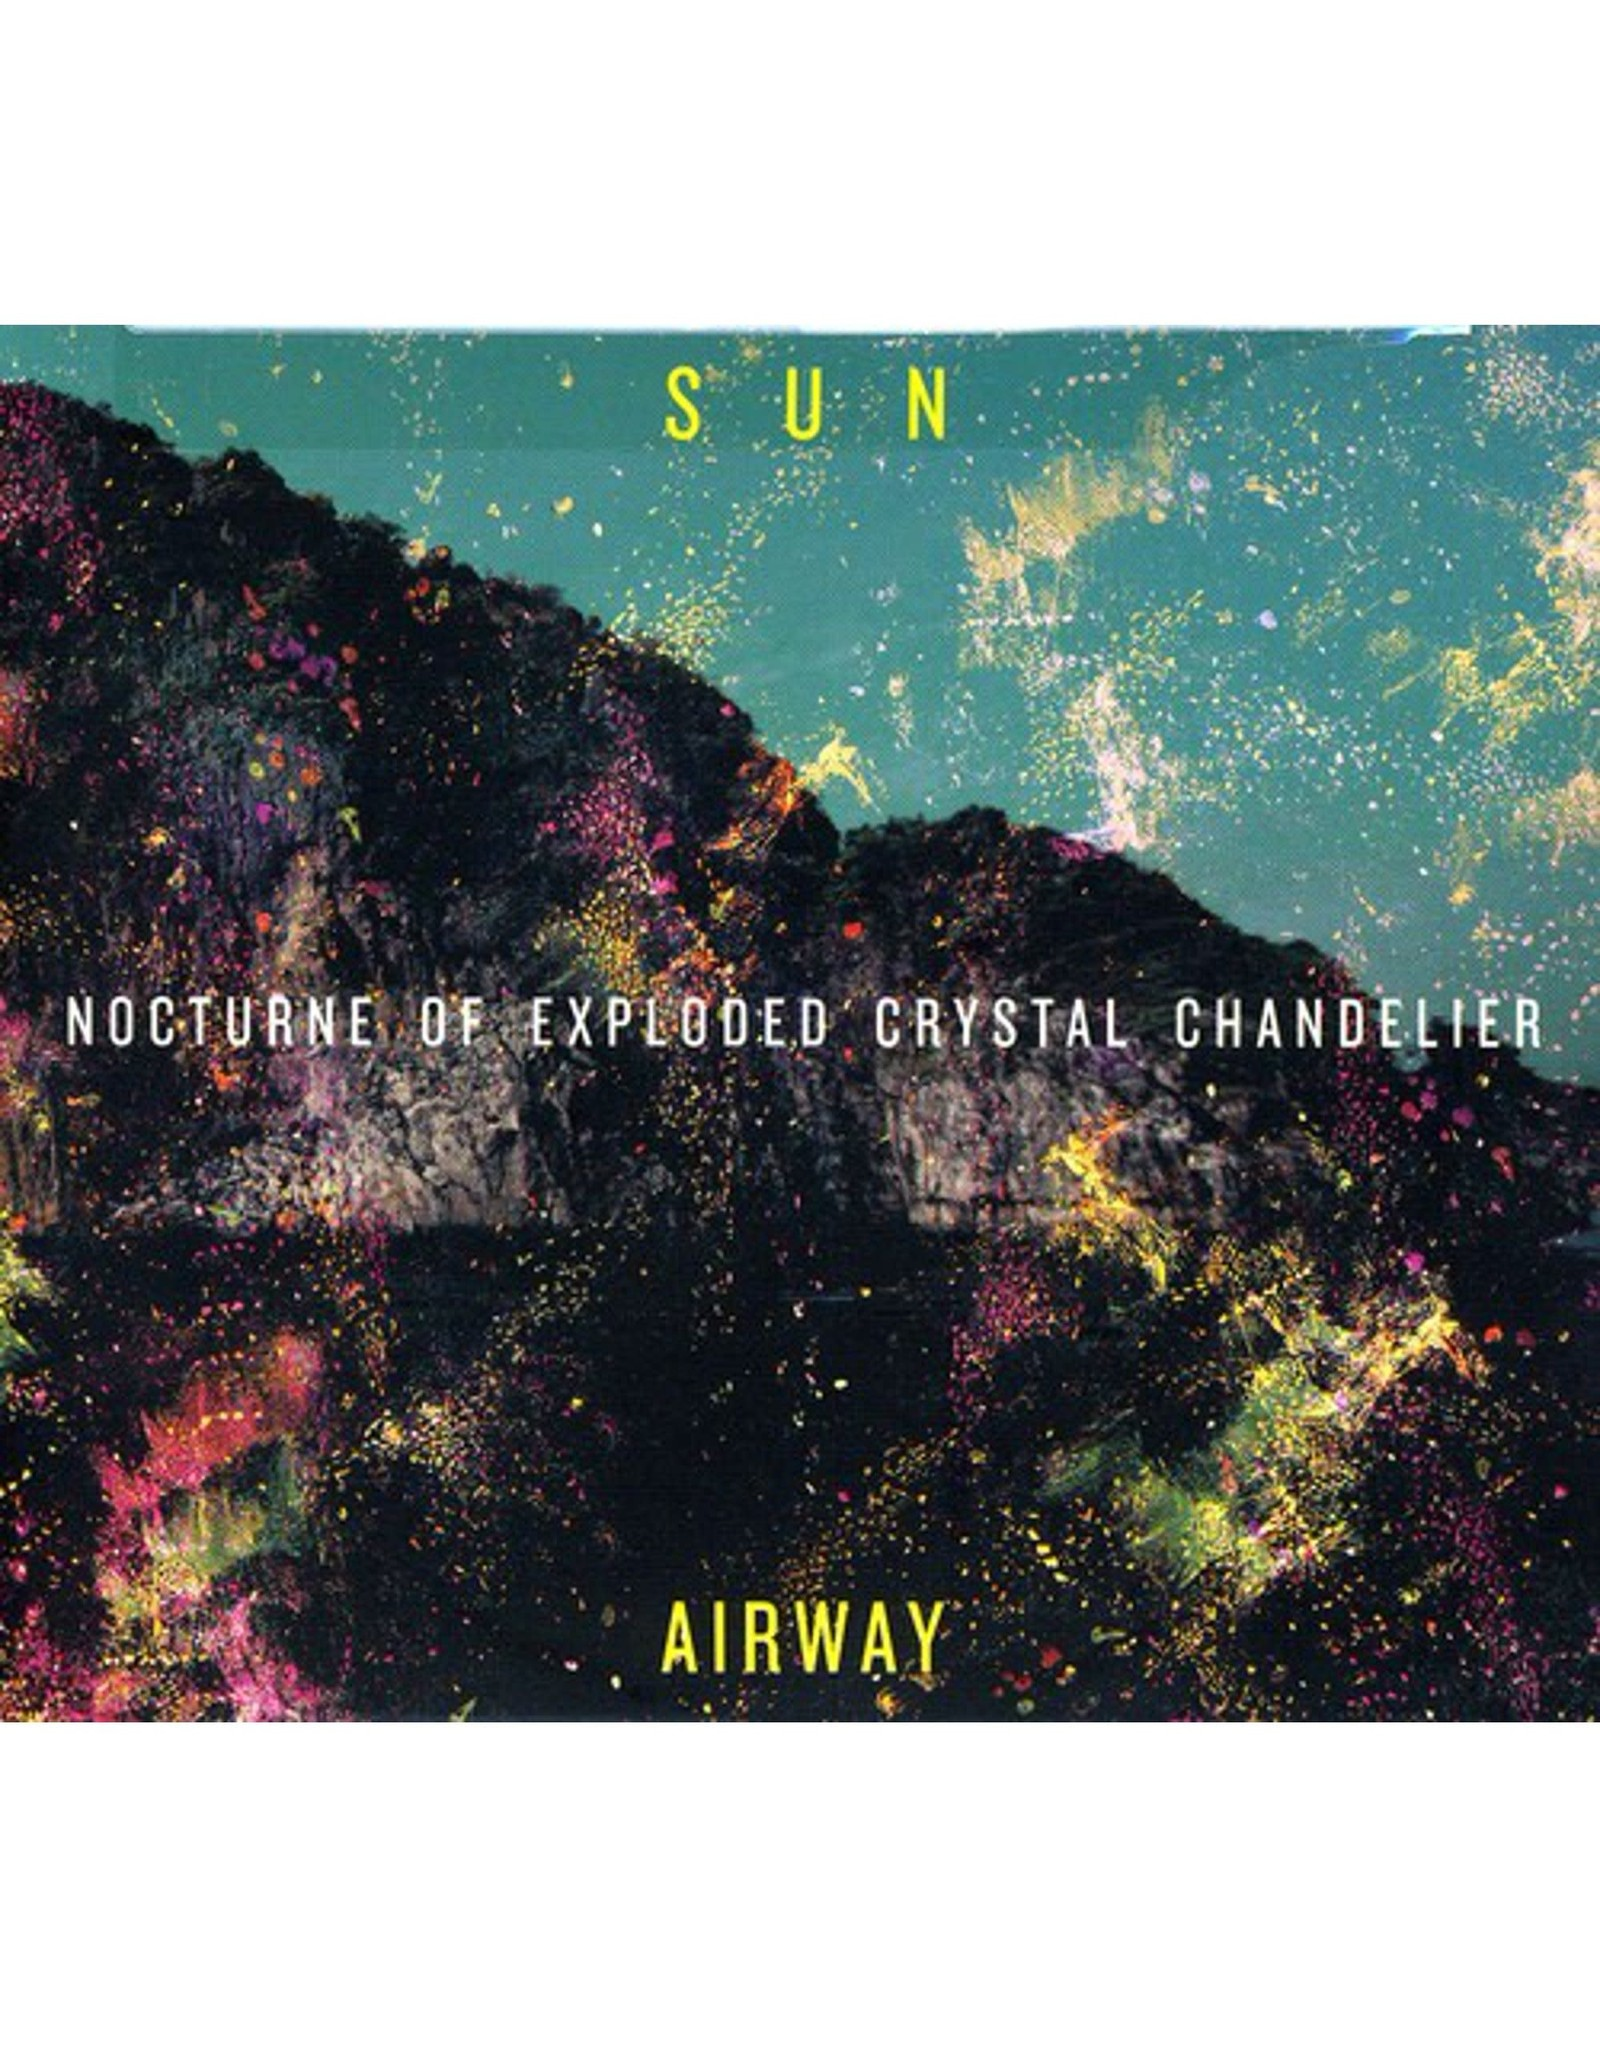 Sun Airway - Nocturne of Exploded Crystal Chandelier CD